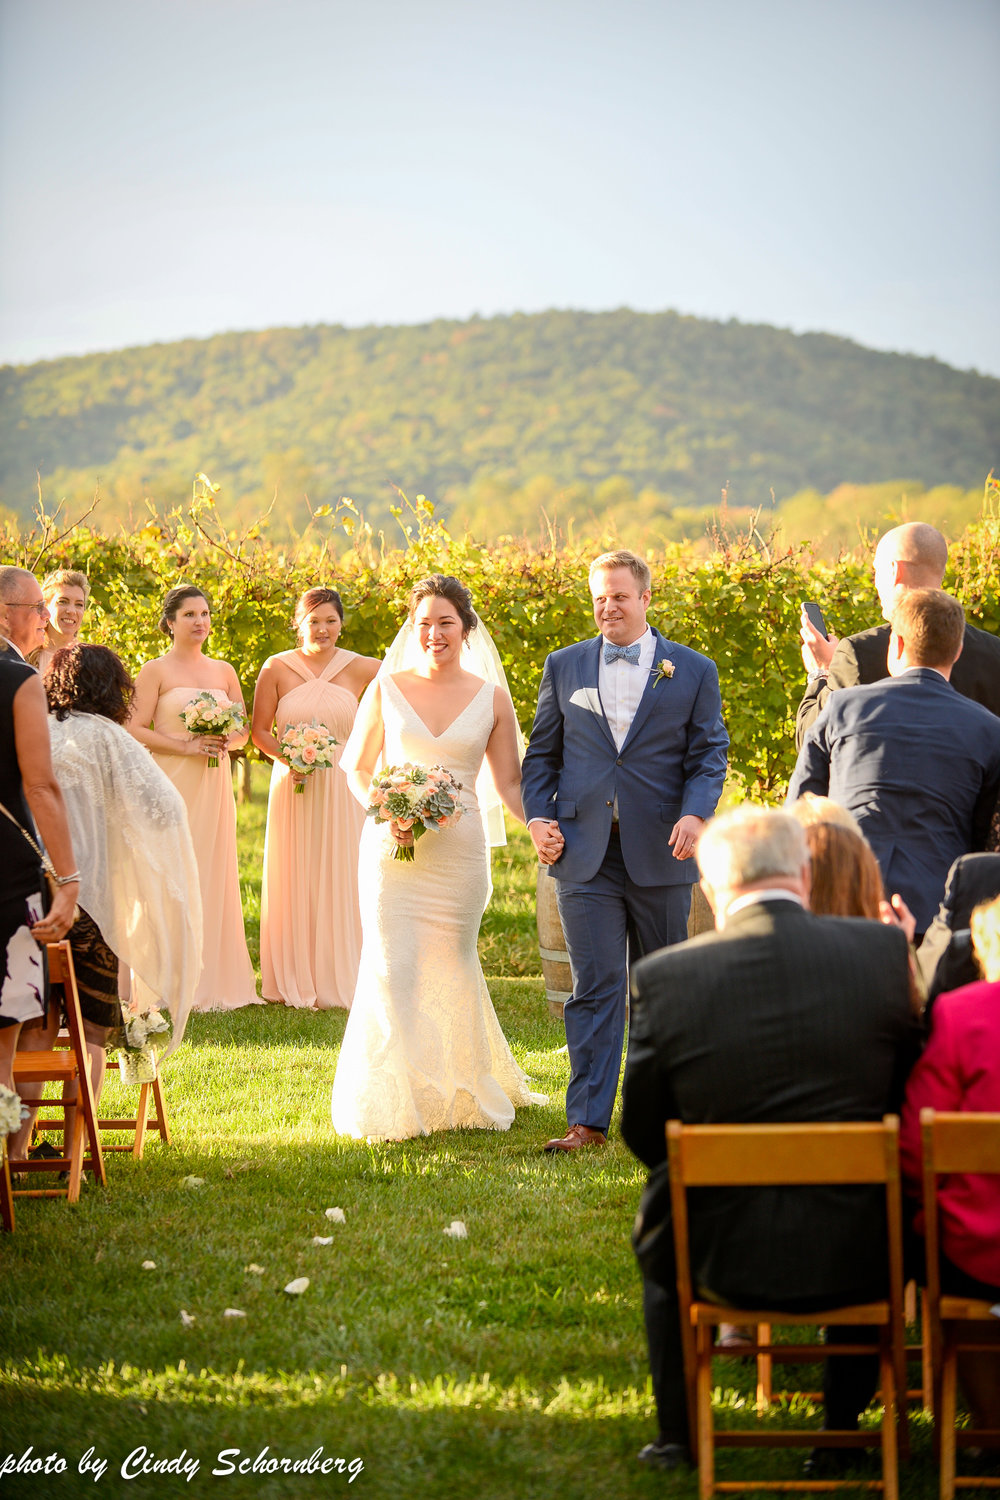 vineyard_weddings_Charlottesville_Virginia_010 (1).jpg